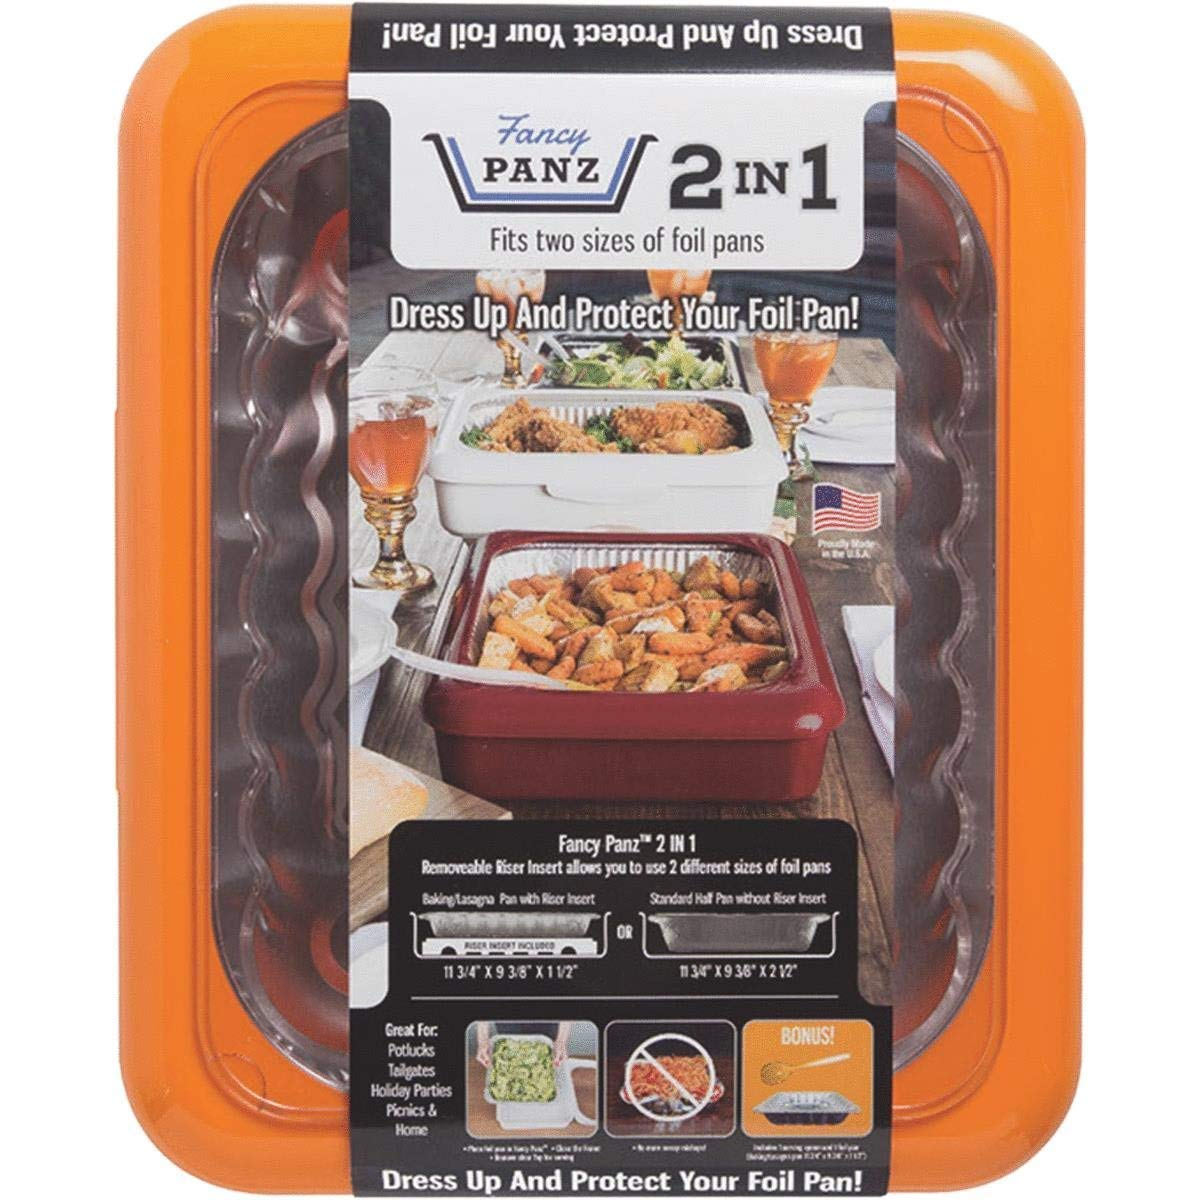 Fancy panz 2-in-1 portable casserole carrier